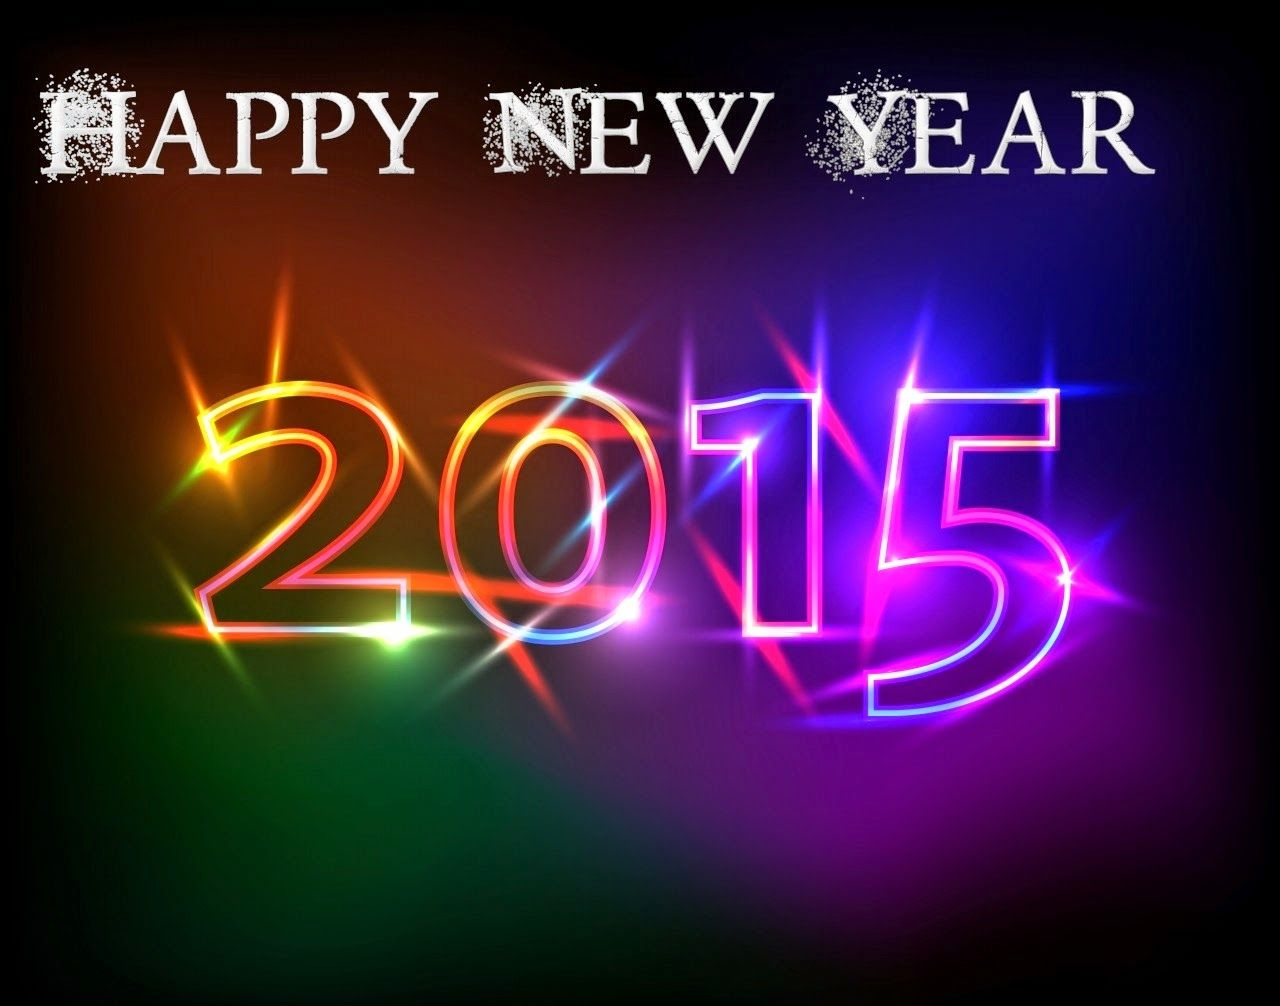 Free Download Happy New Year 2015 Quotes Wallpapers Pics Images Photos Pictures